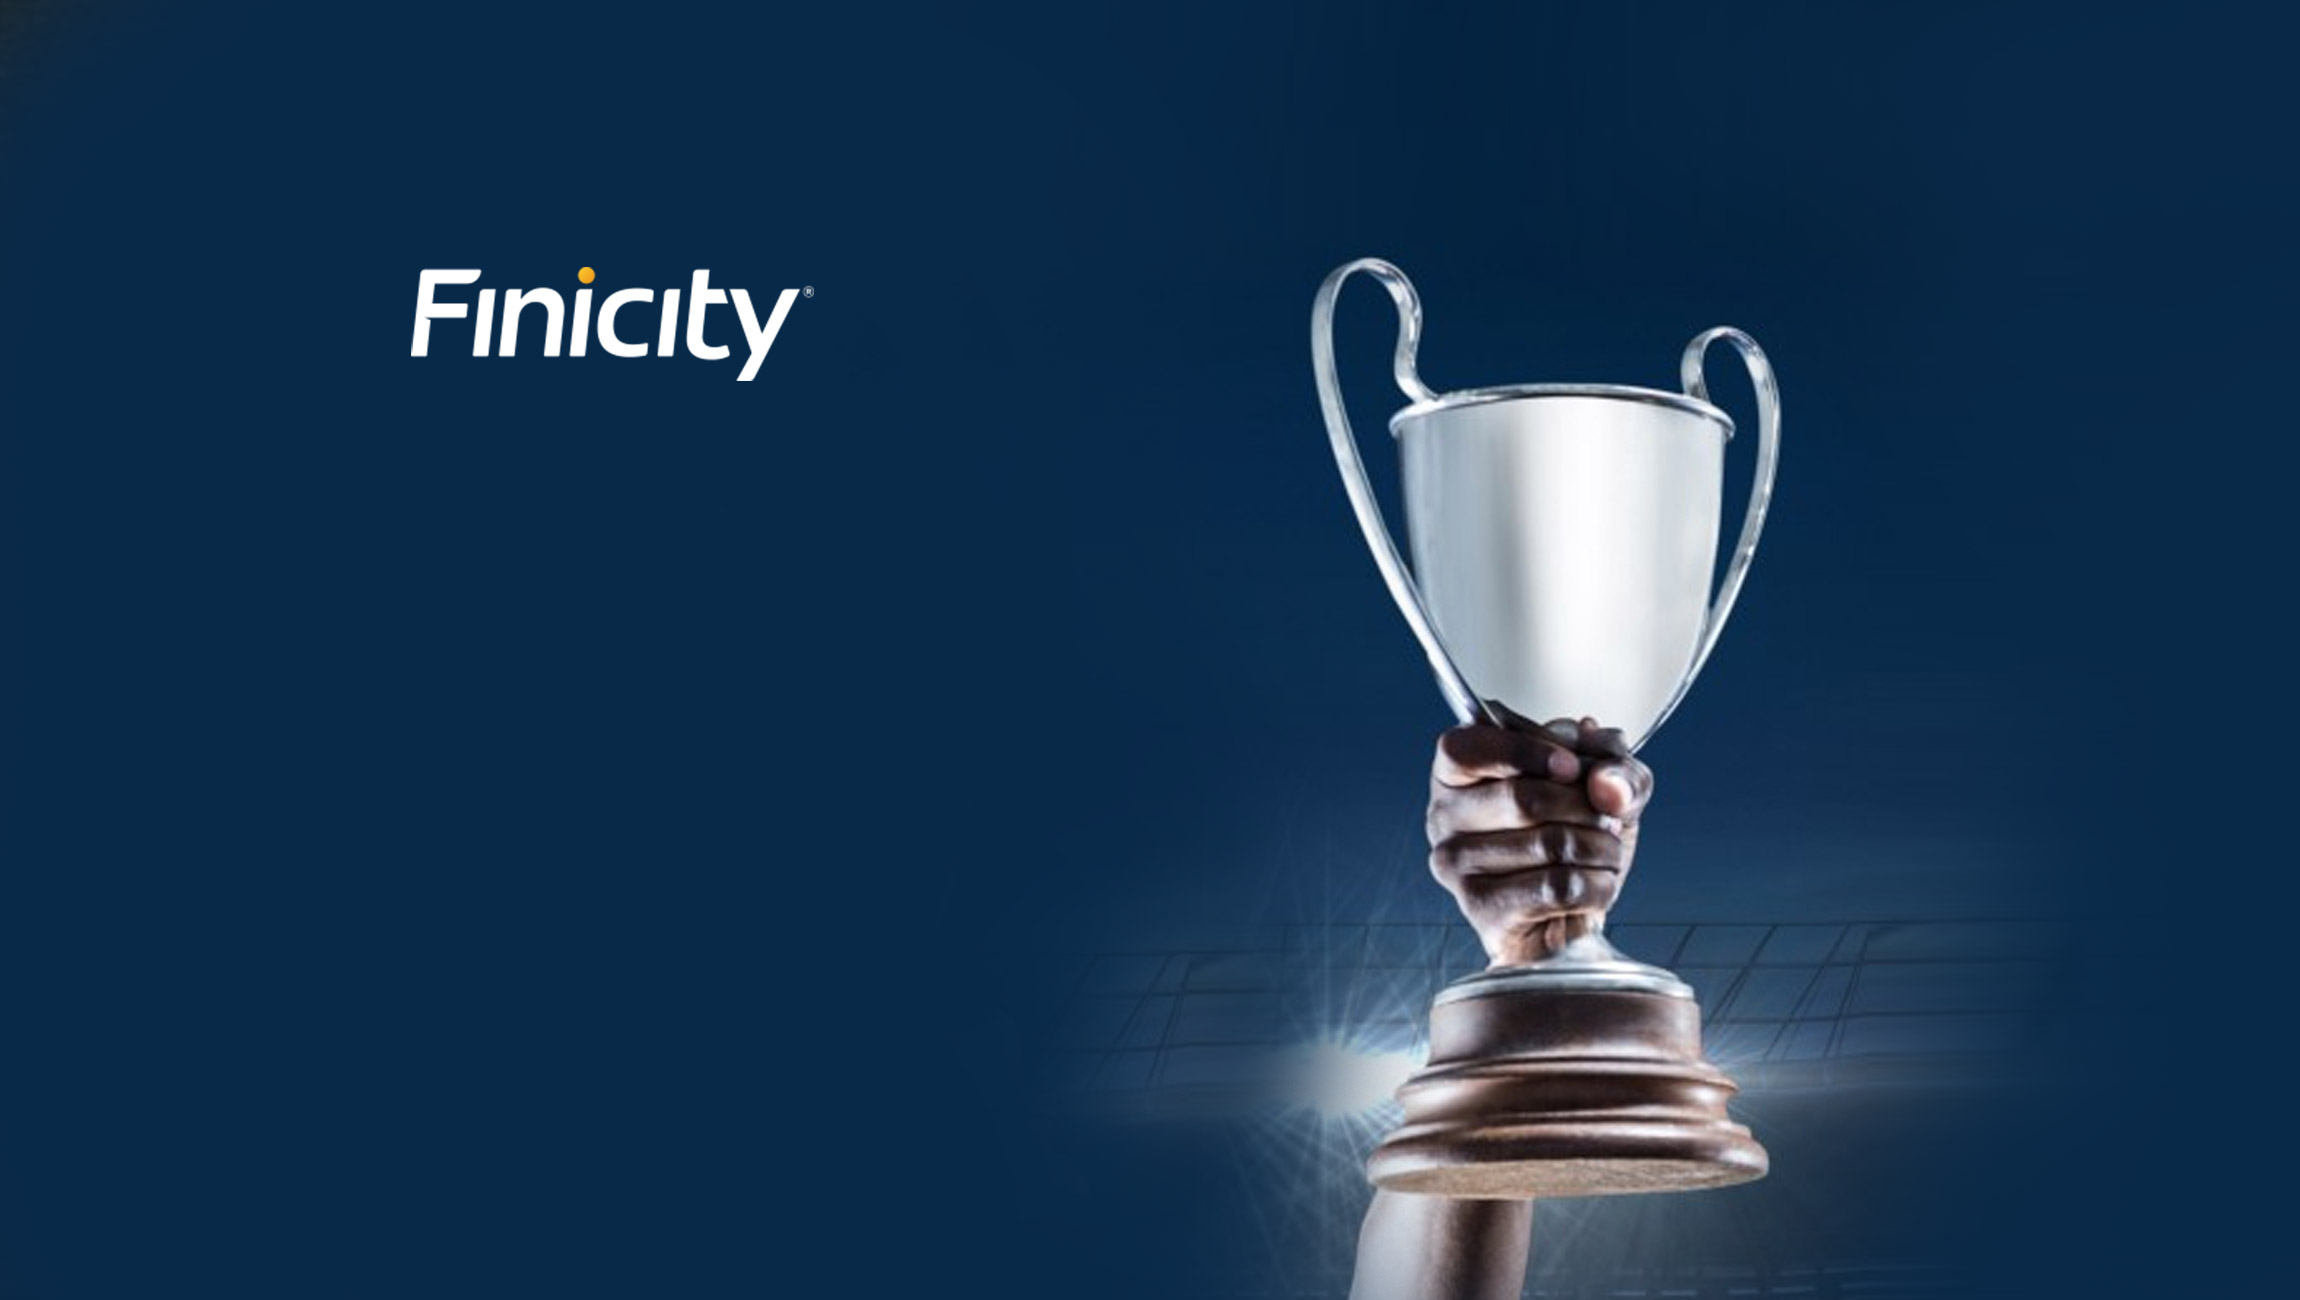 Finicity Awarded Best Company Culture for 2019 From Comparably